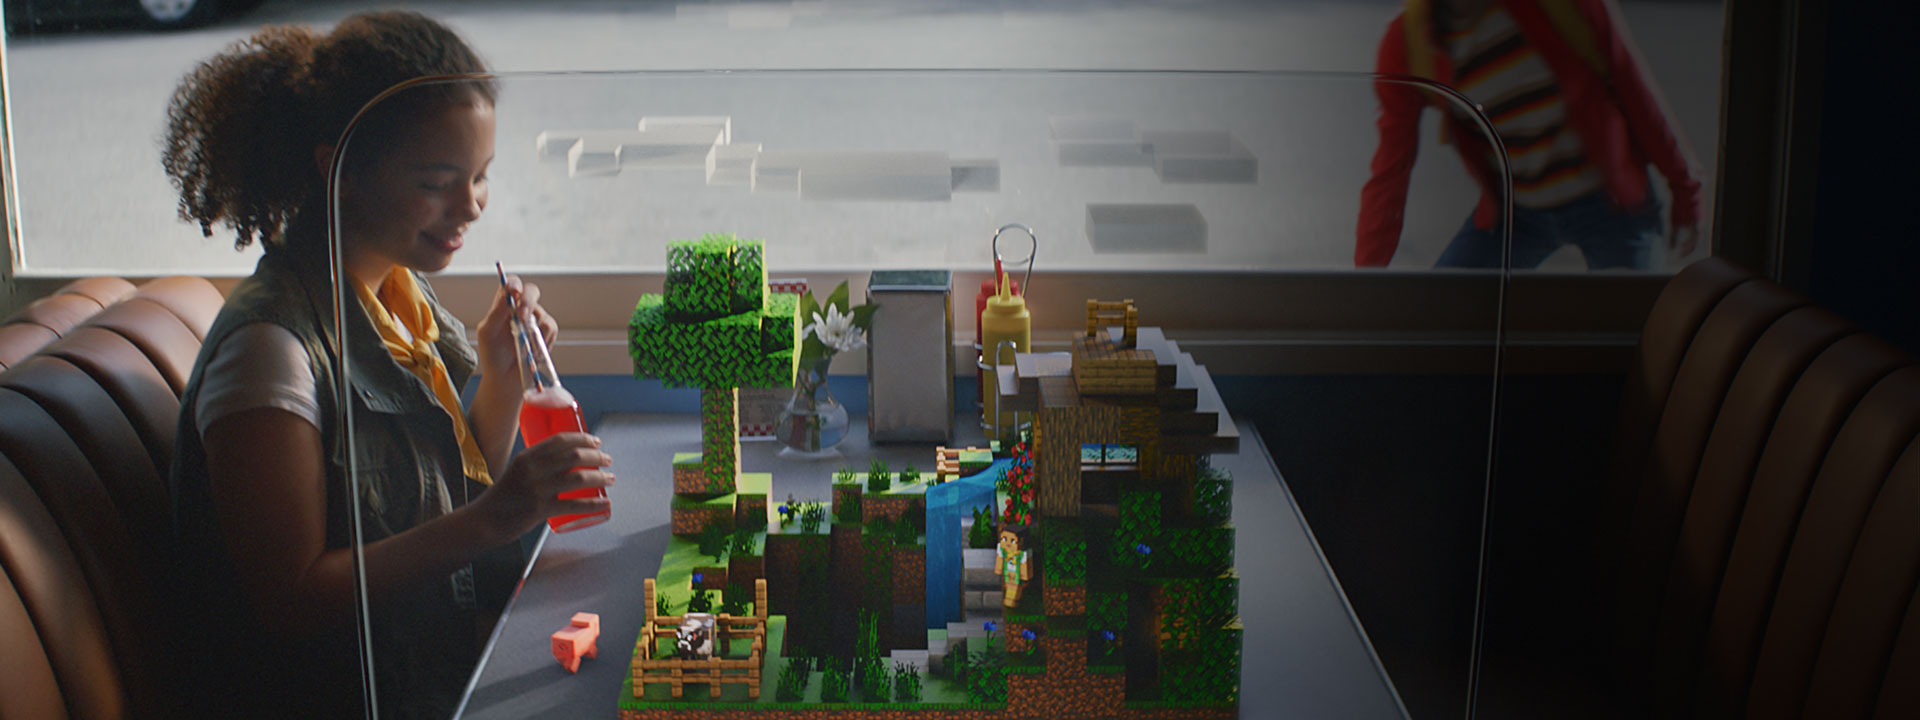 Girl sitting at a table with Minecraft scene on the table